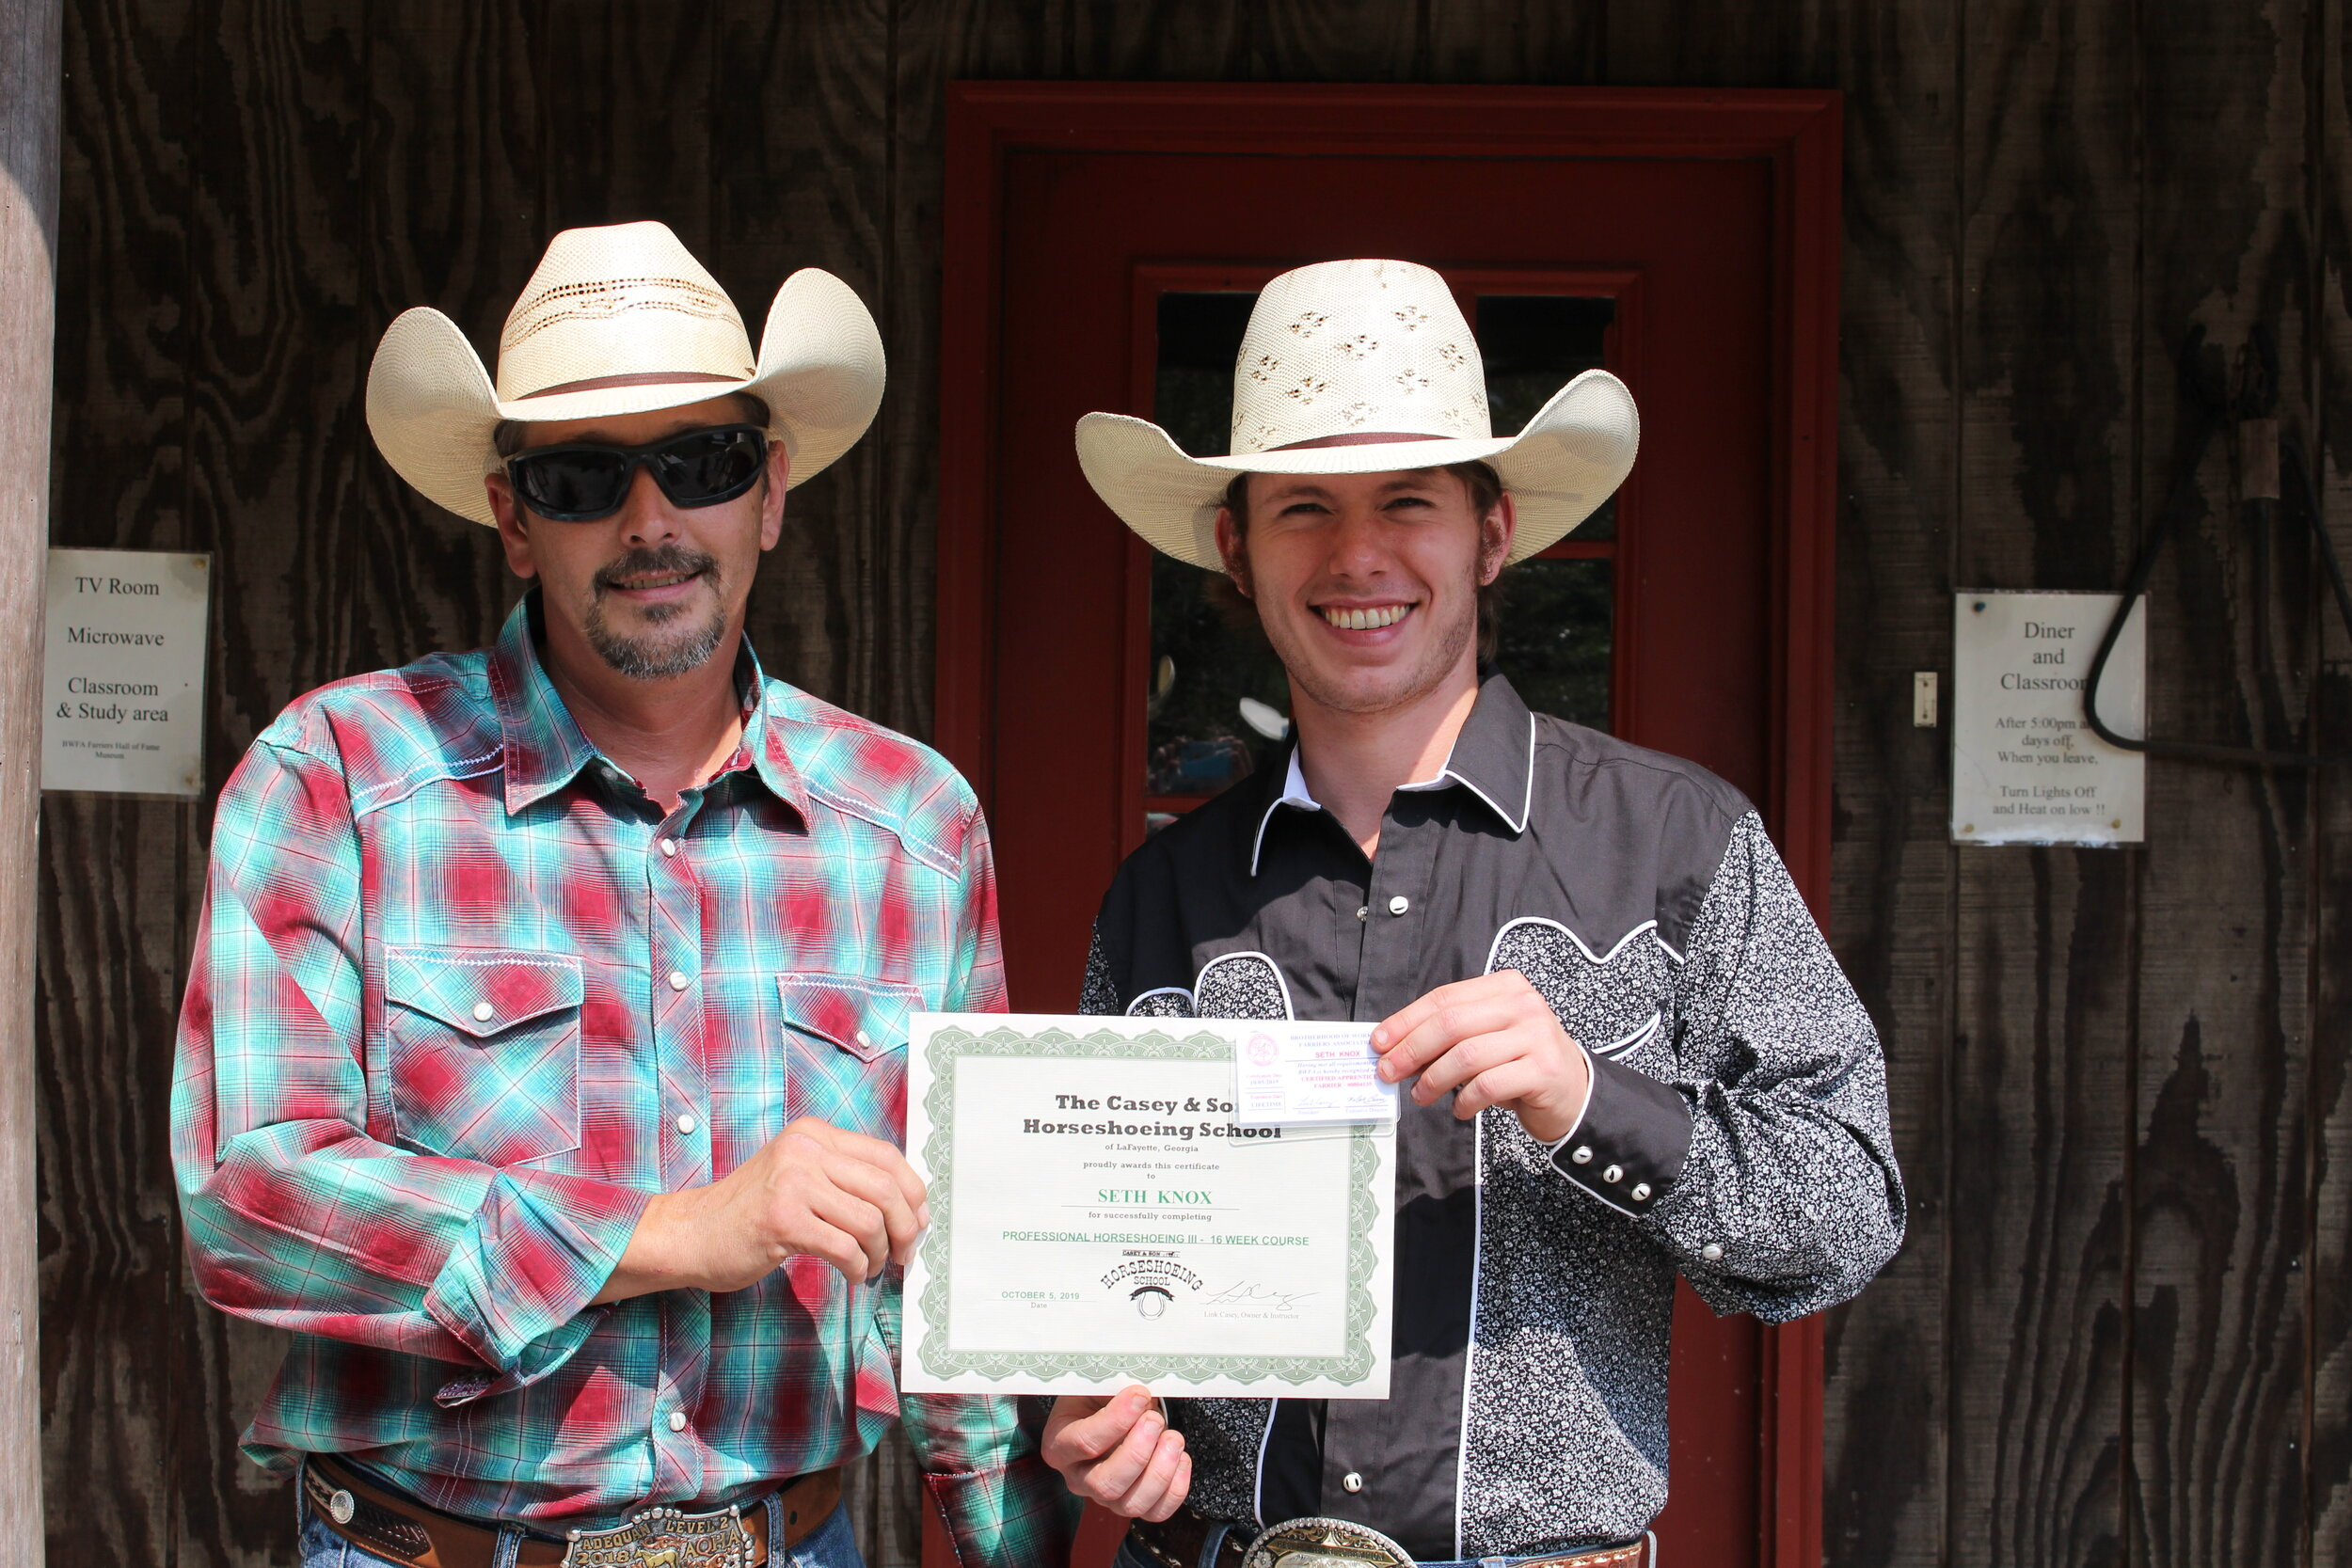 Seth Knox of TN Farrier Graduate of Casey & Son Horseshoeing School with Jarvis Bowen, Instructor